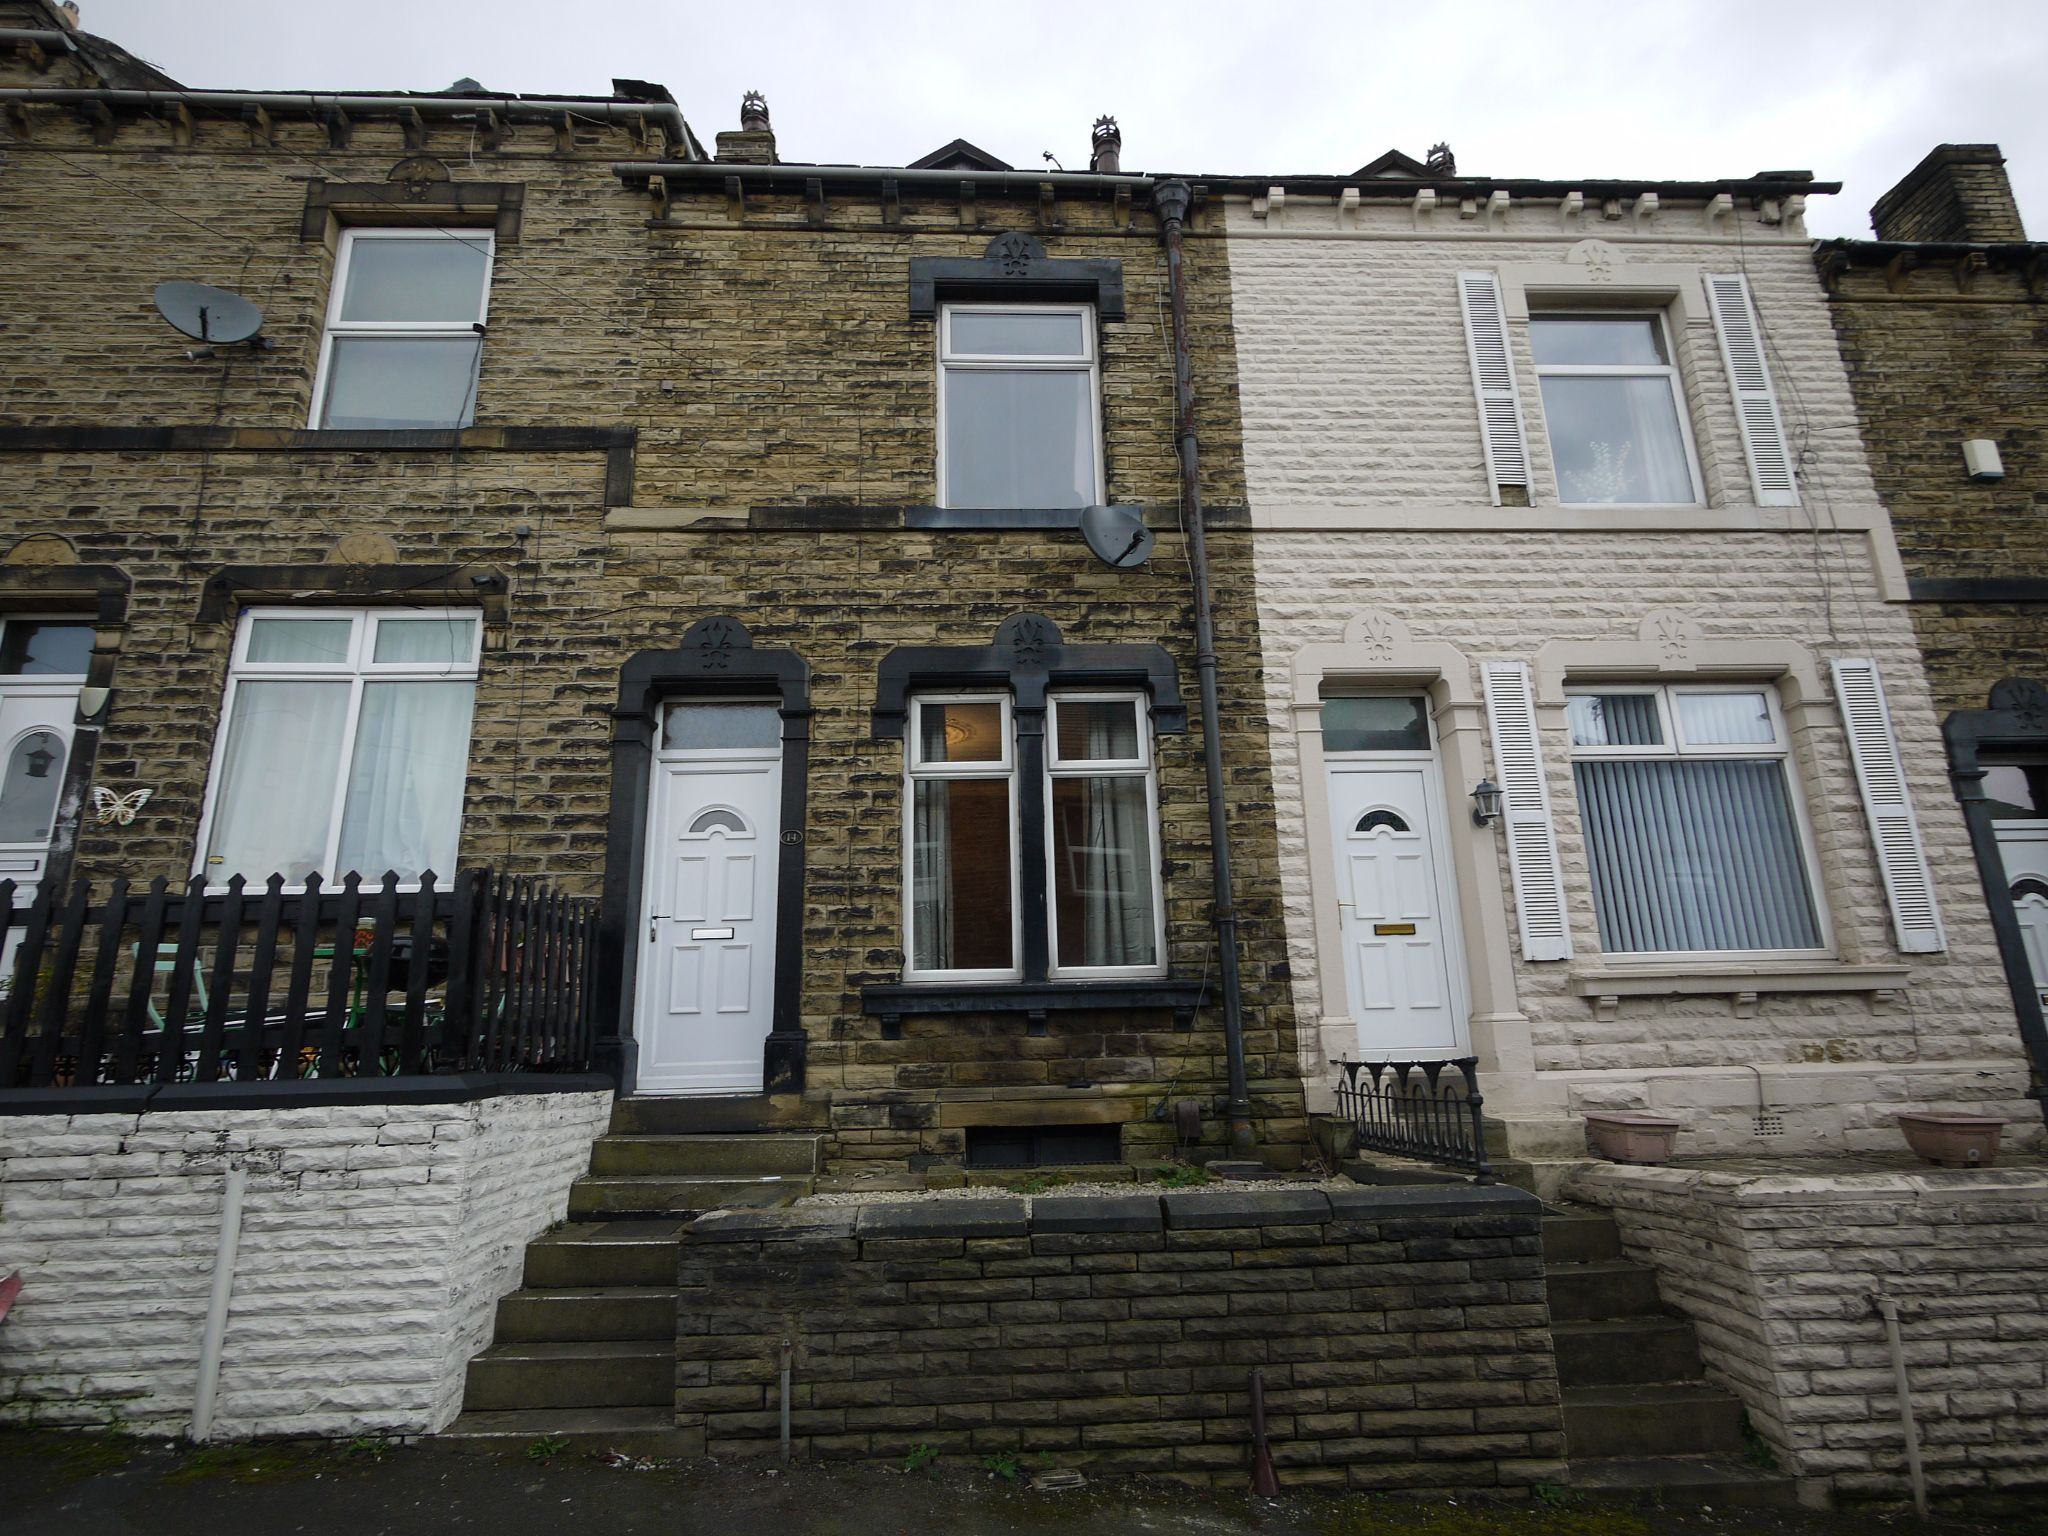 4 bedroom mid terraced house For Sale in Brighouse - Main house.